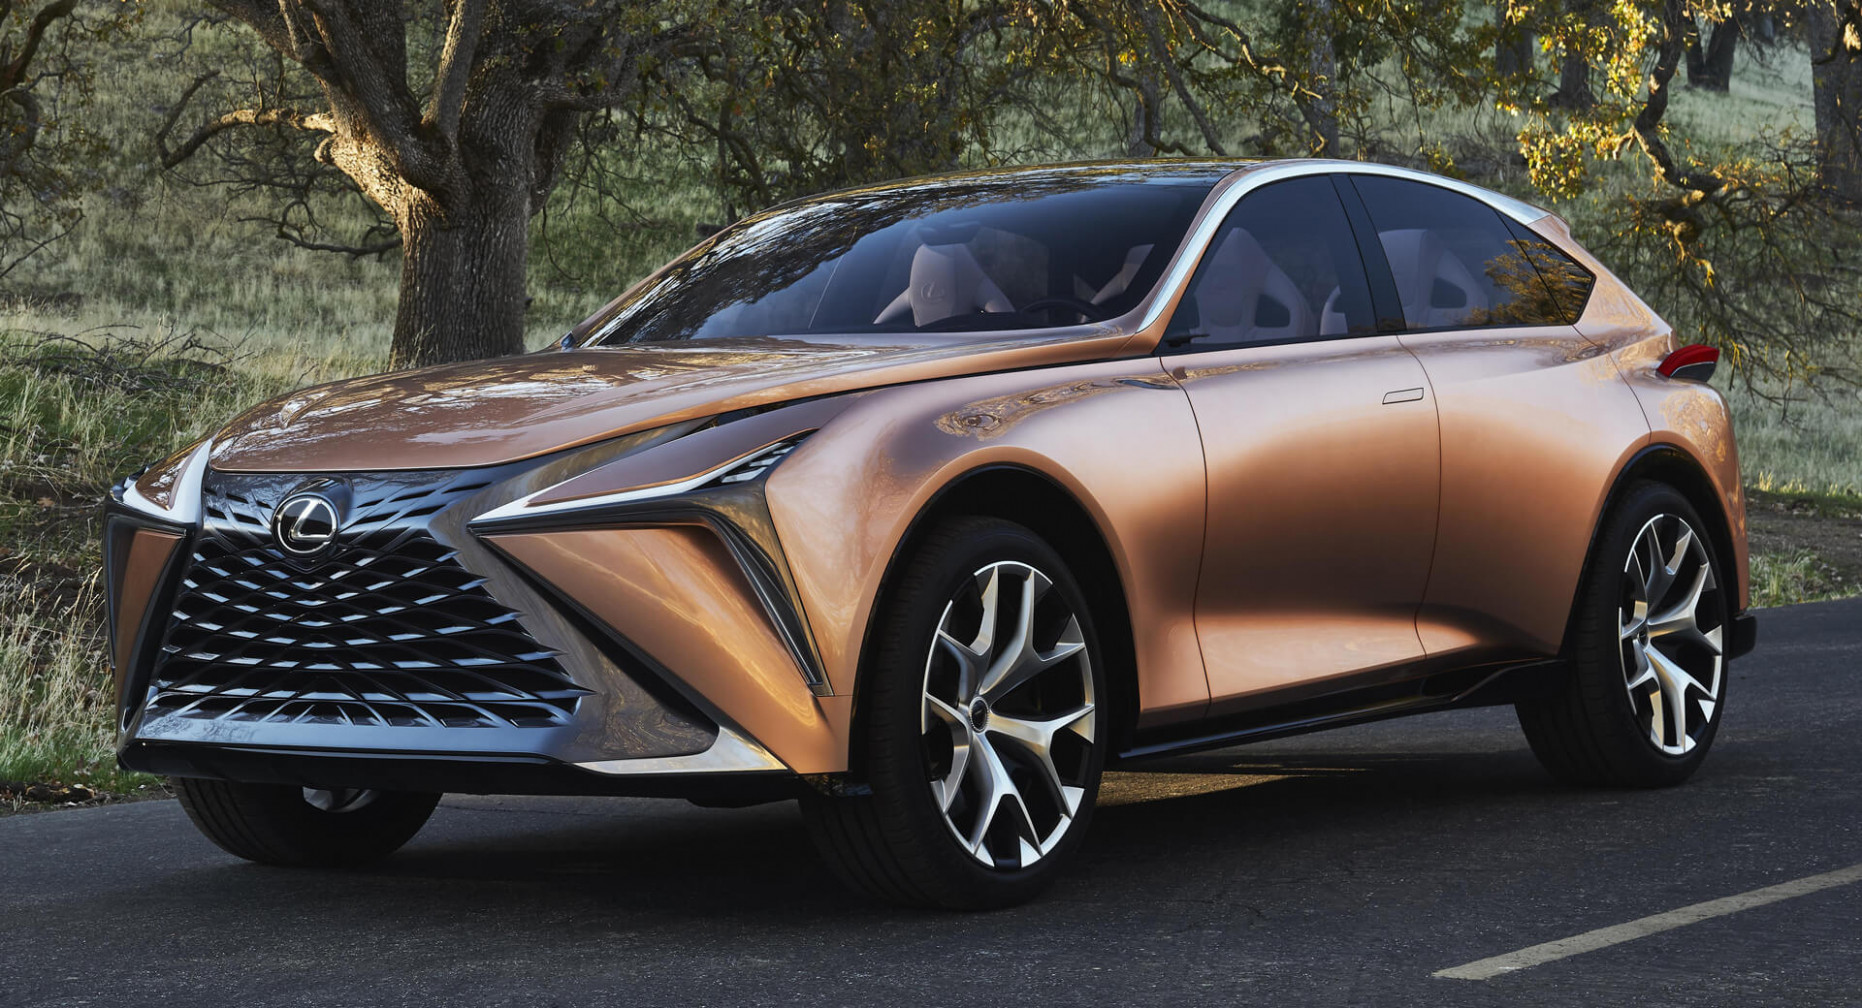 Redesign and Concept Lexus Is 2022